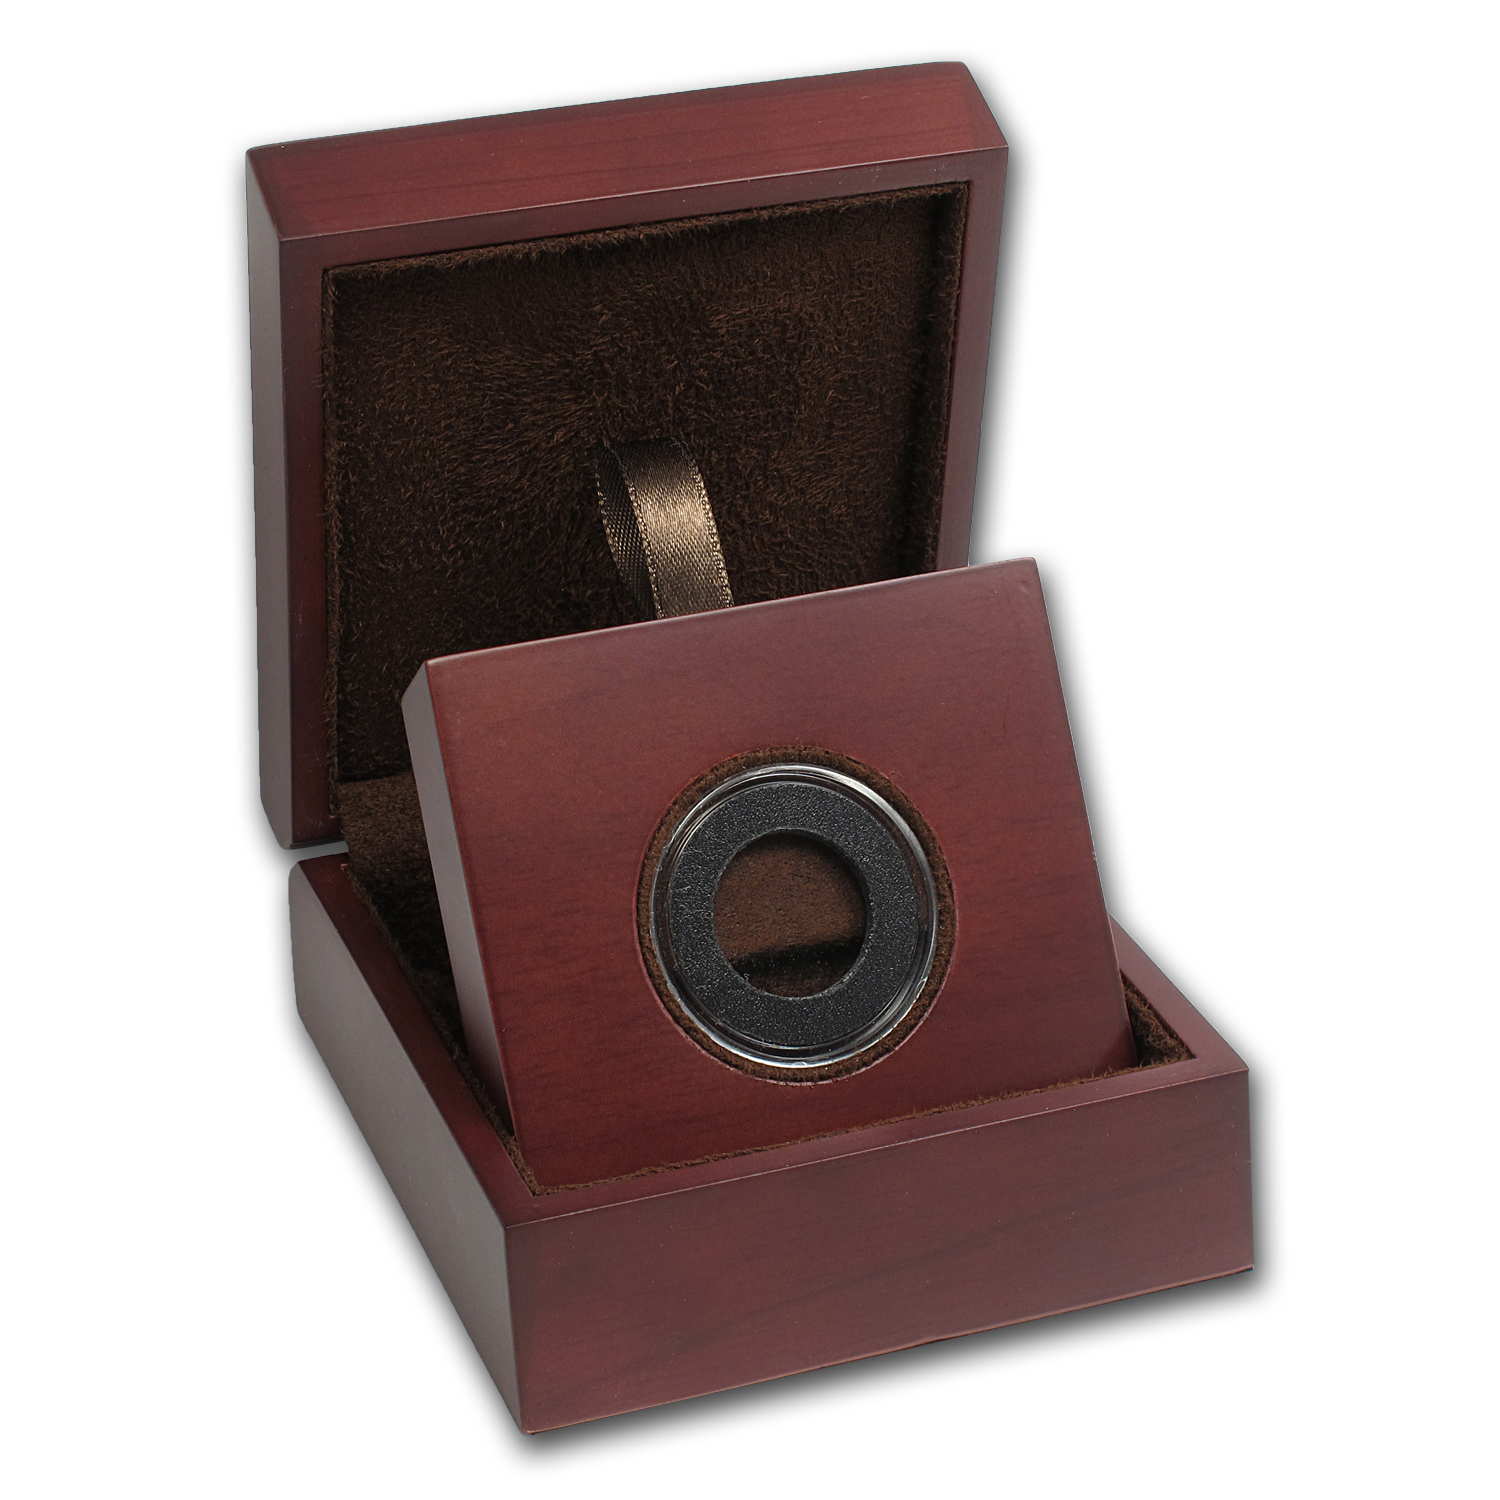 APMEX Wood Gift Box - Includes 20 mm Air-Tite Holder with Gasket